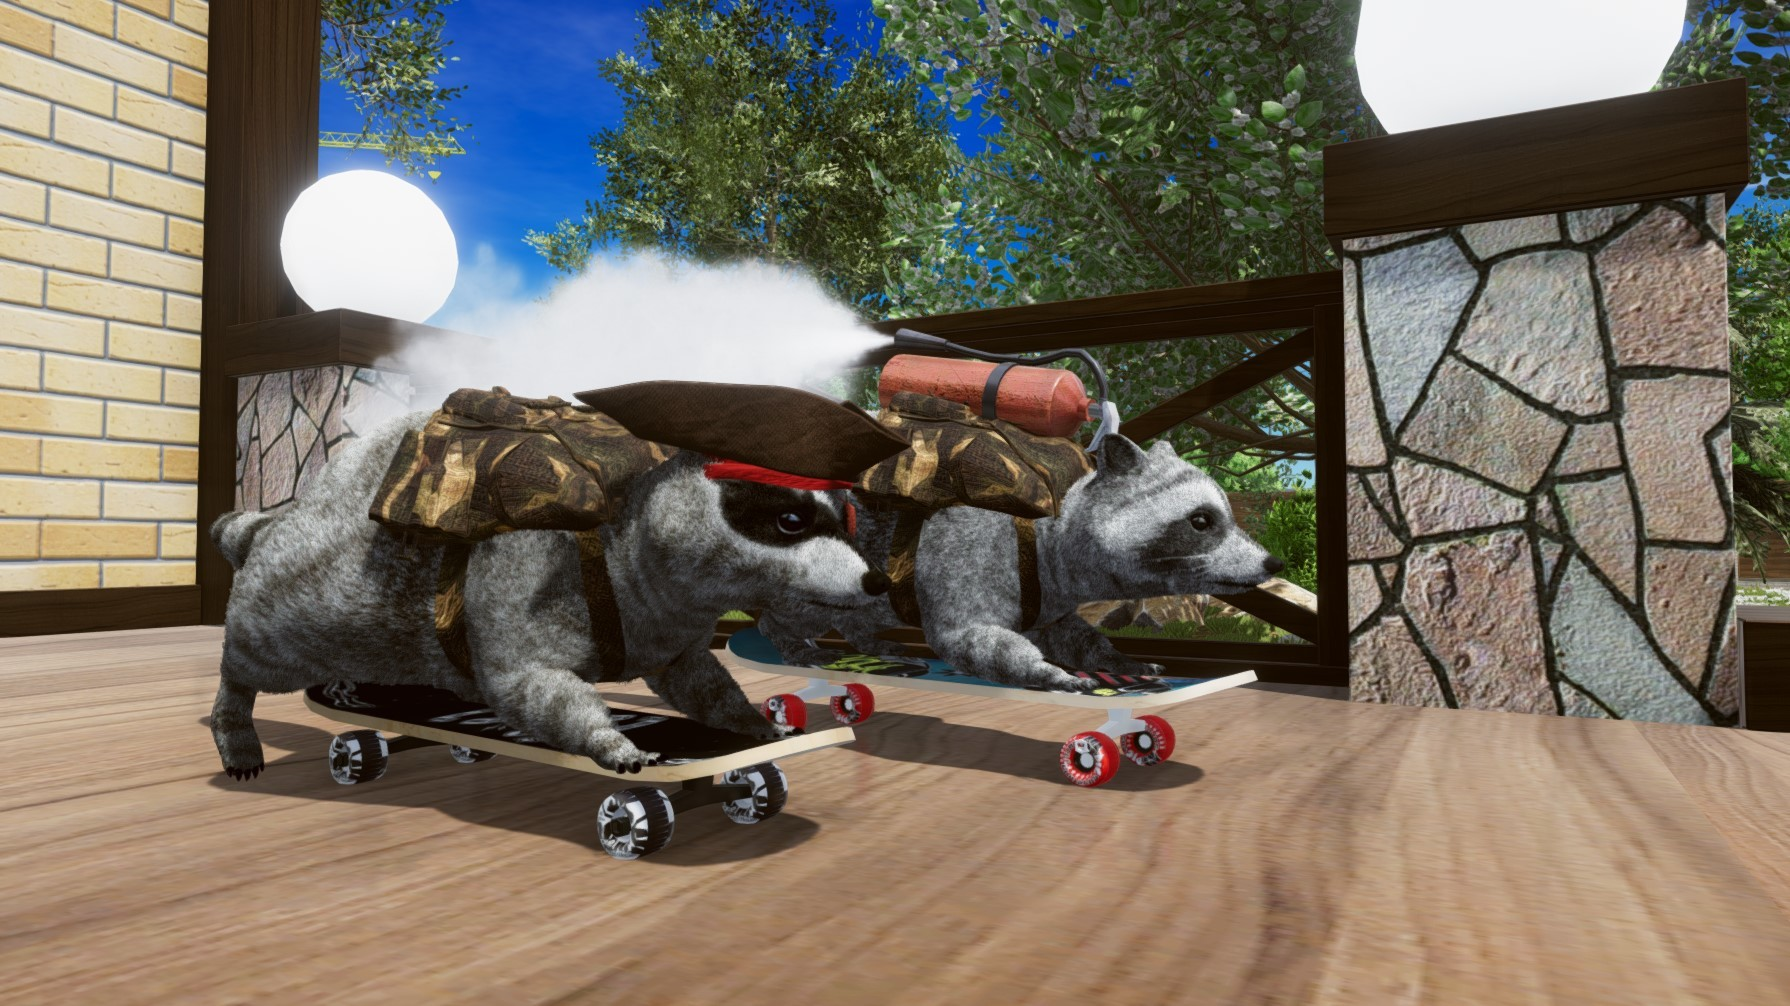 Two raccoons get ready to ride some skateboards, one with a fire extinguisher on its back.